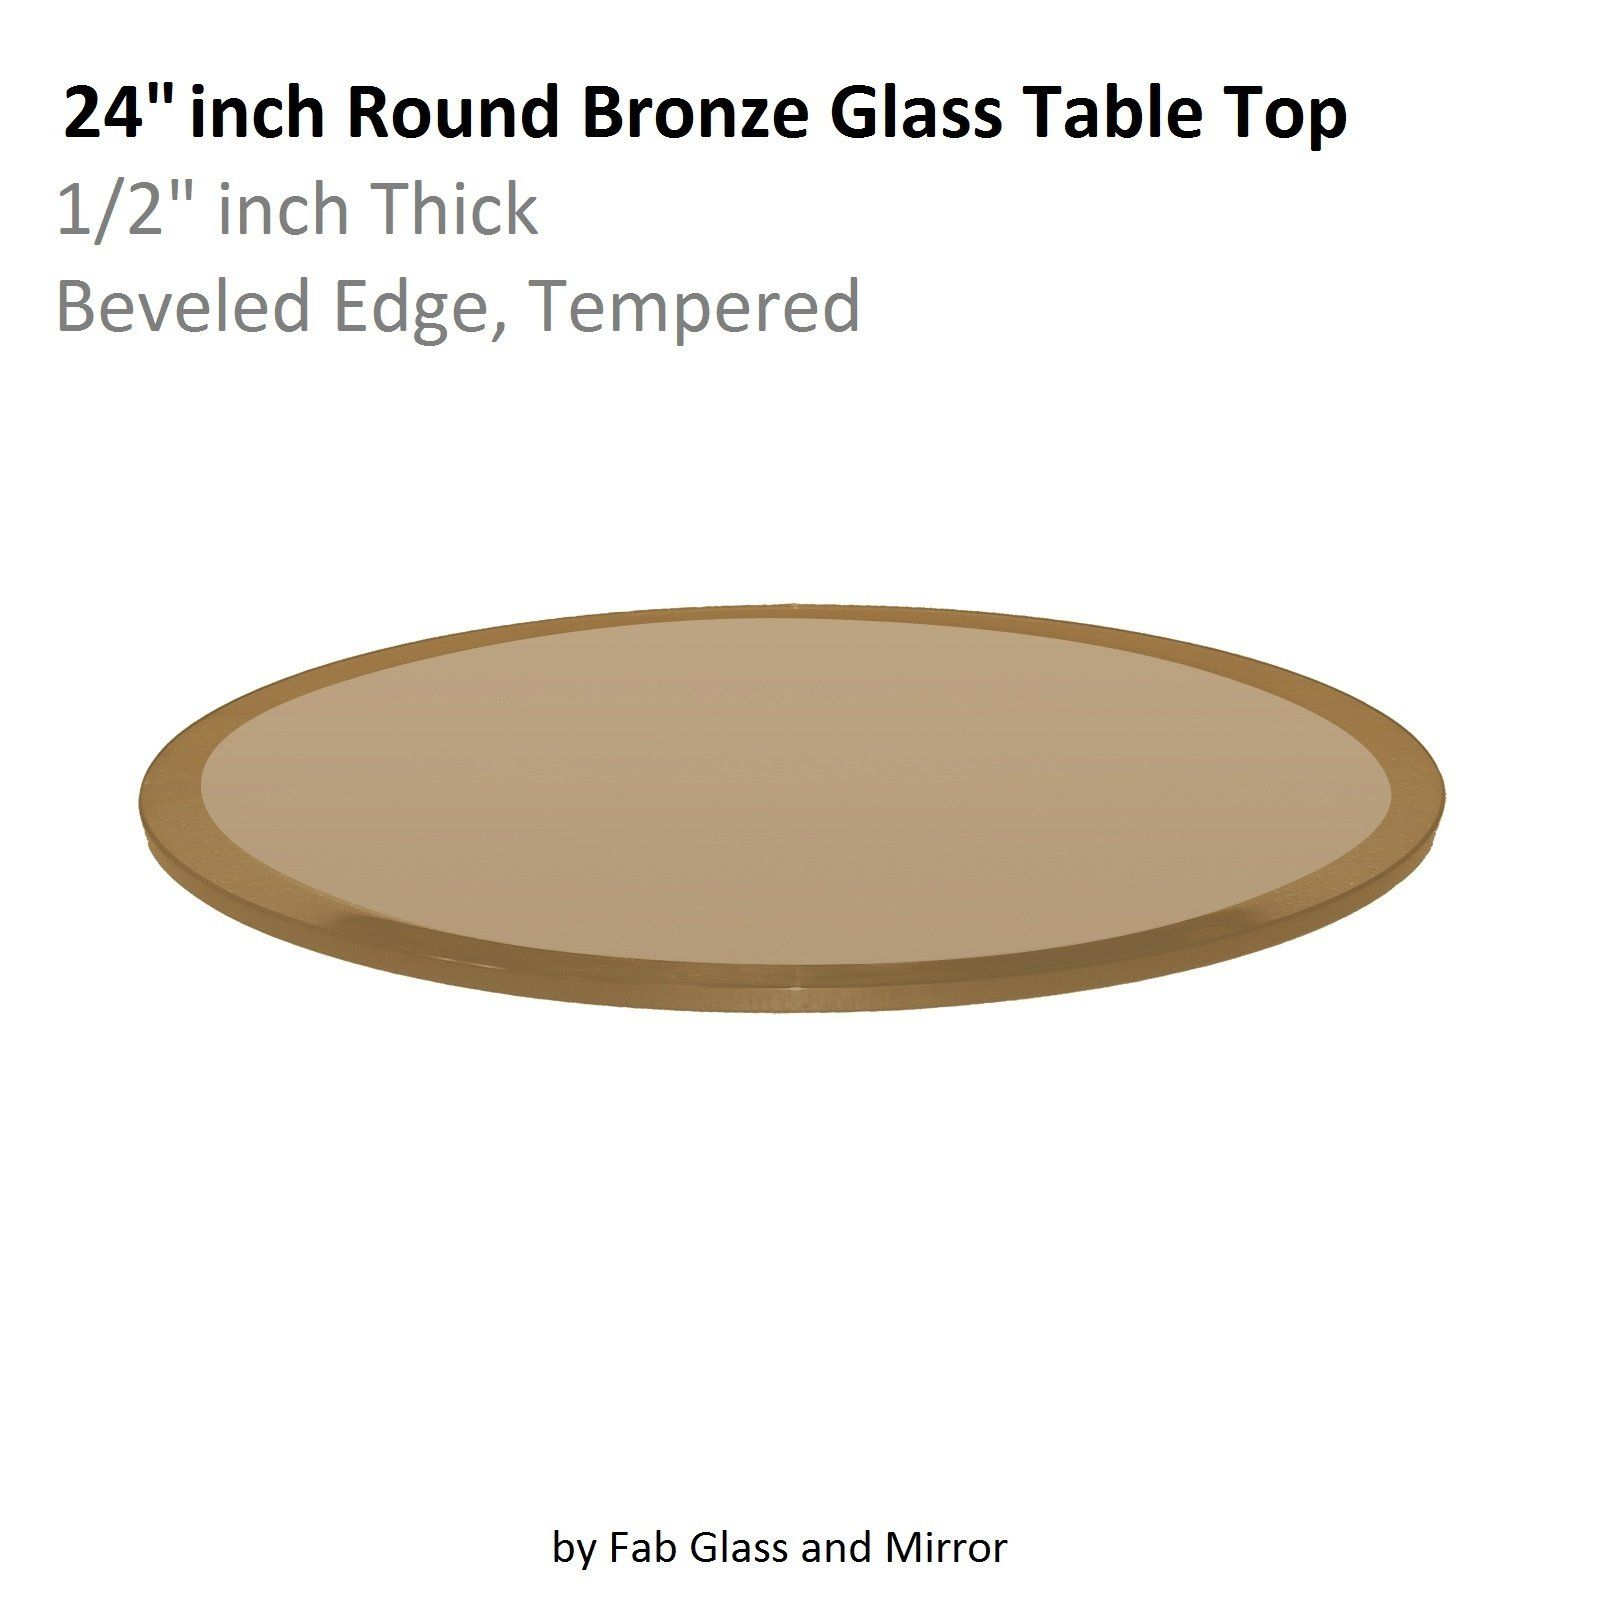 Fab Glass And Mirror Glass Table Top 24 Round 1 2 Thick Beveled Tempered Bronze See This Great Product Glass Table Round Glass Table Round Glass Table Top